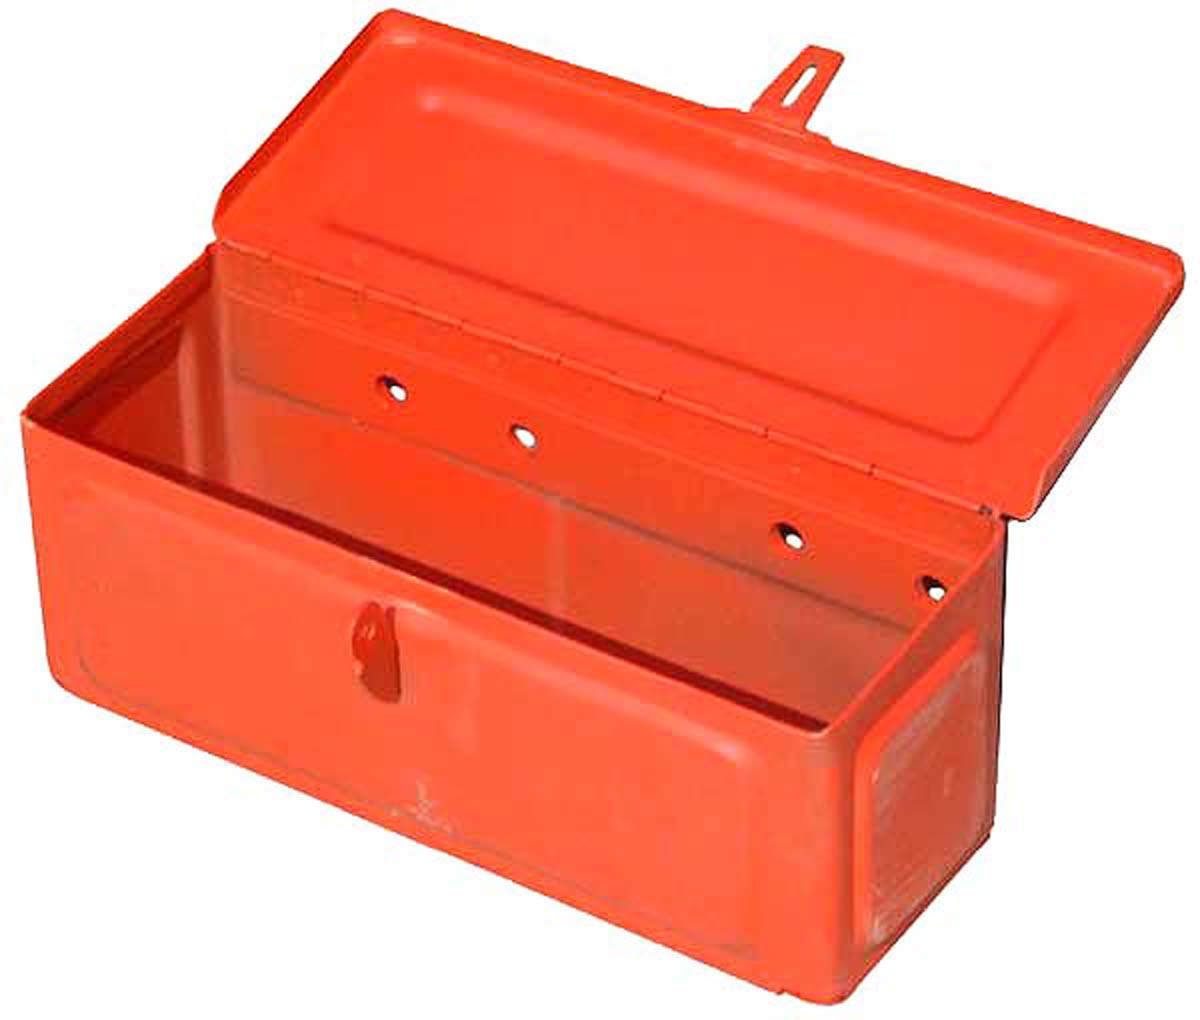 8n Ford Tractor Tool Box : Abc toolbox universal ford n tractor parts